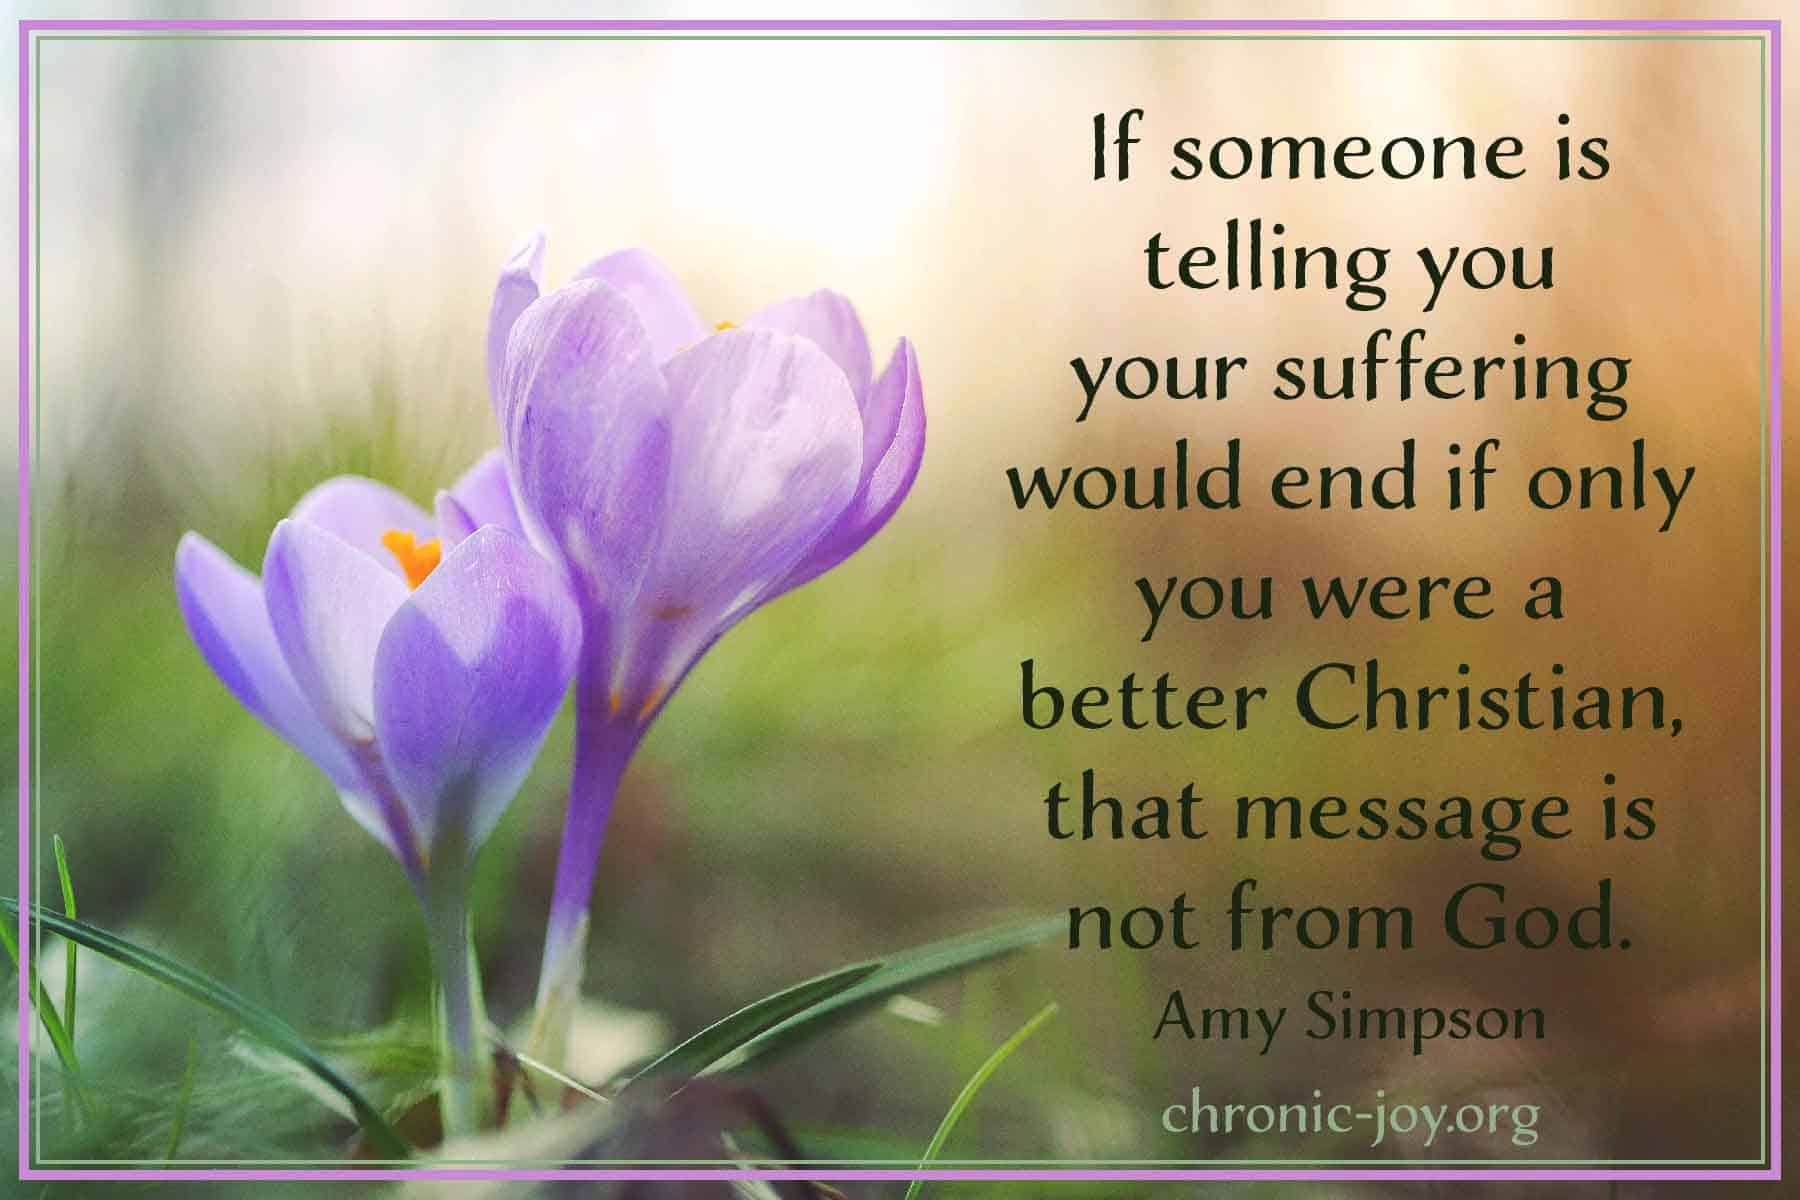 Belief in Christ doesn't mean we won't suffer